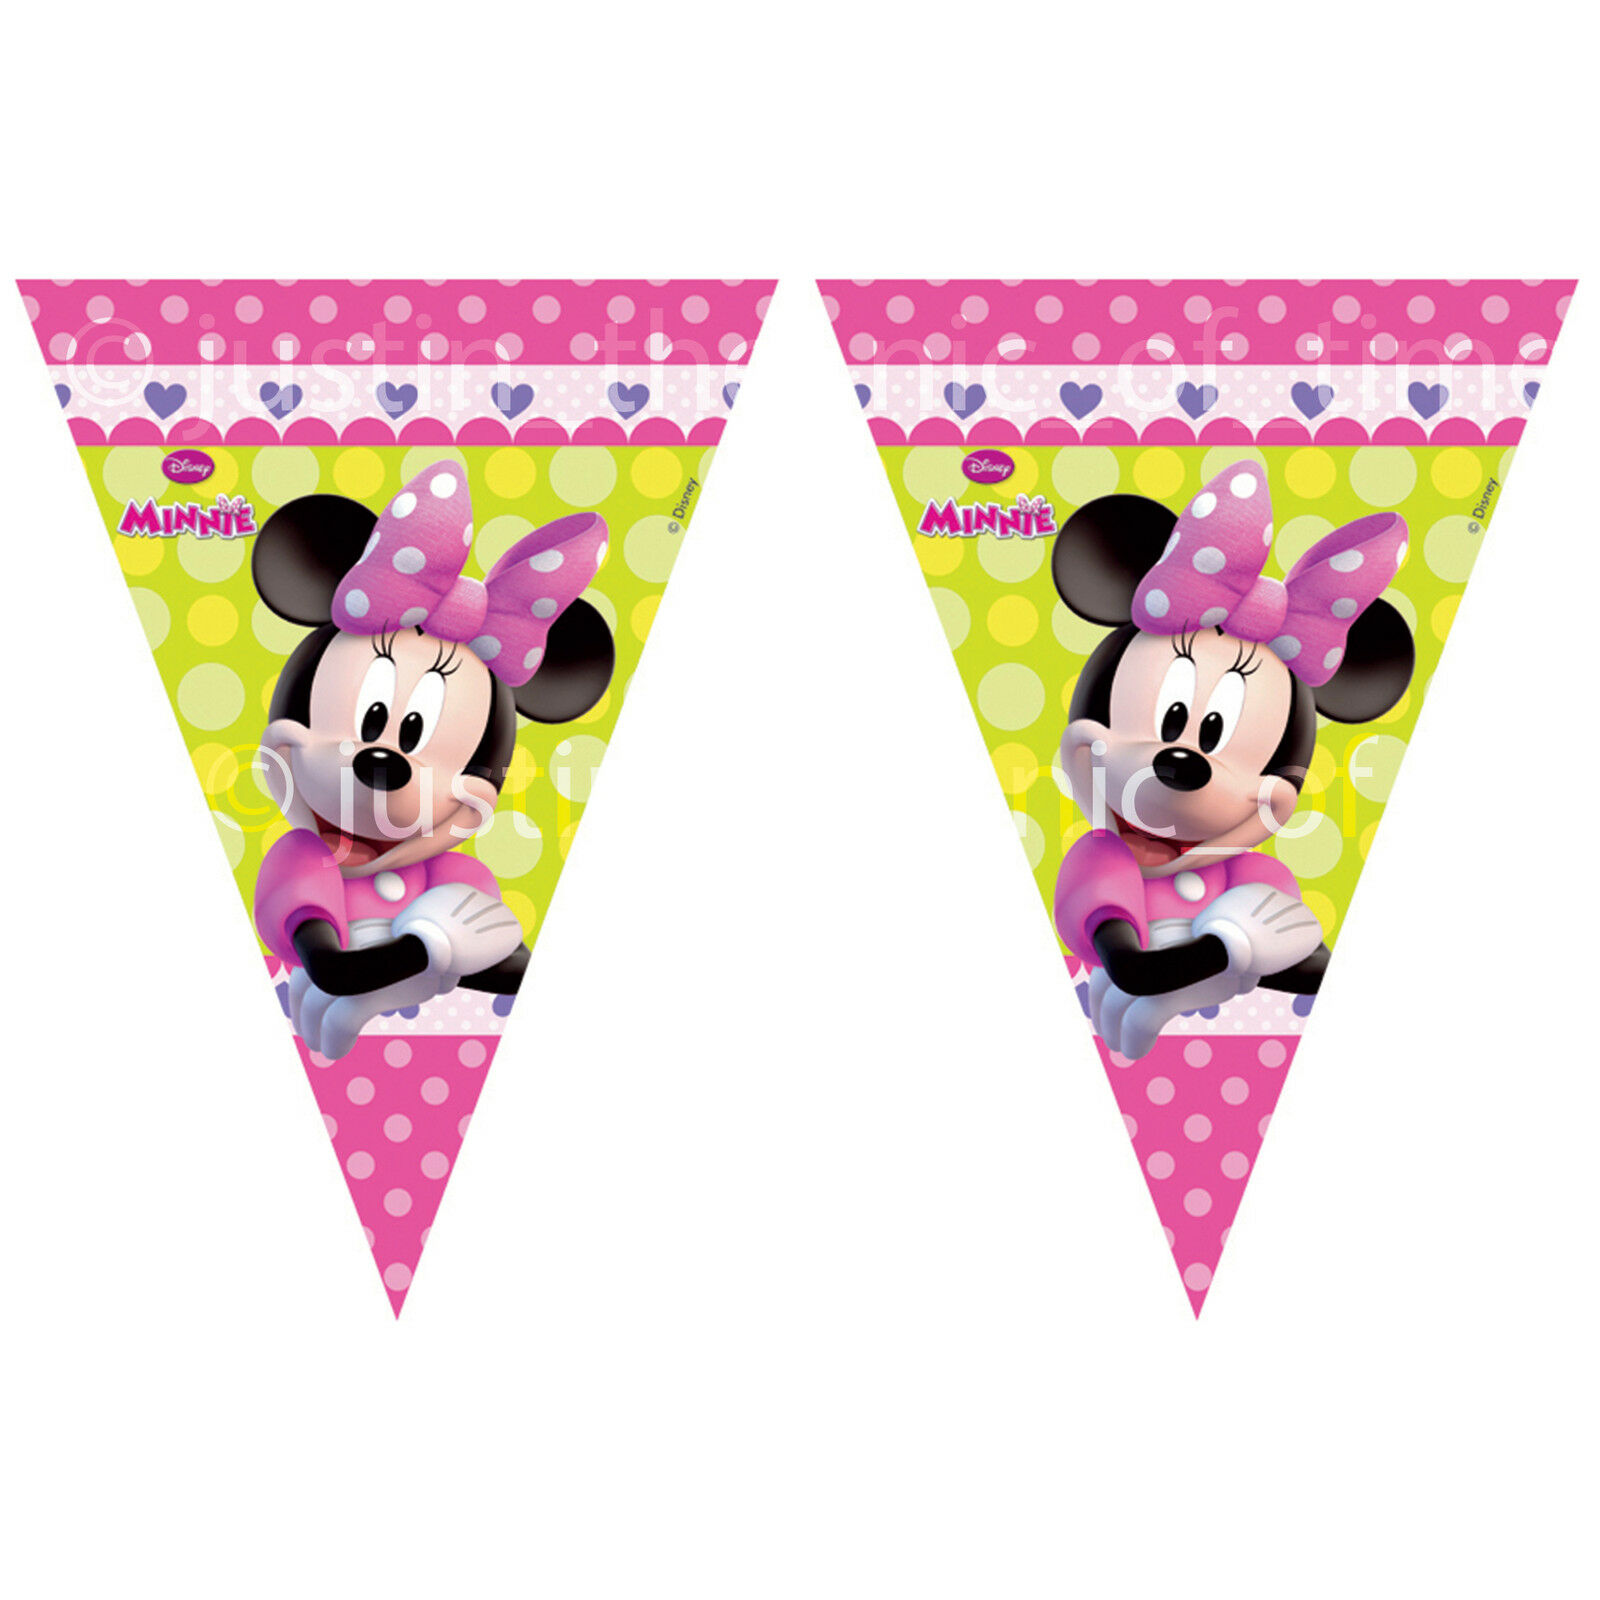 9aedbefc4 MINNIE MOUSE Girls Birthday Party Decorations Long FLAG BANNER ...